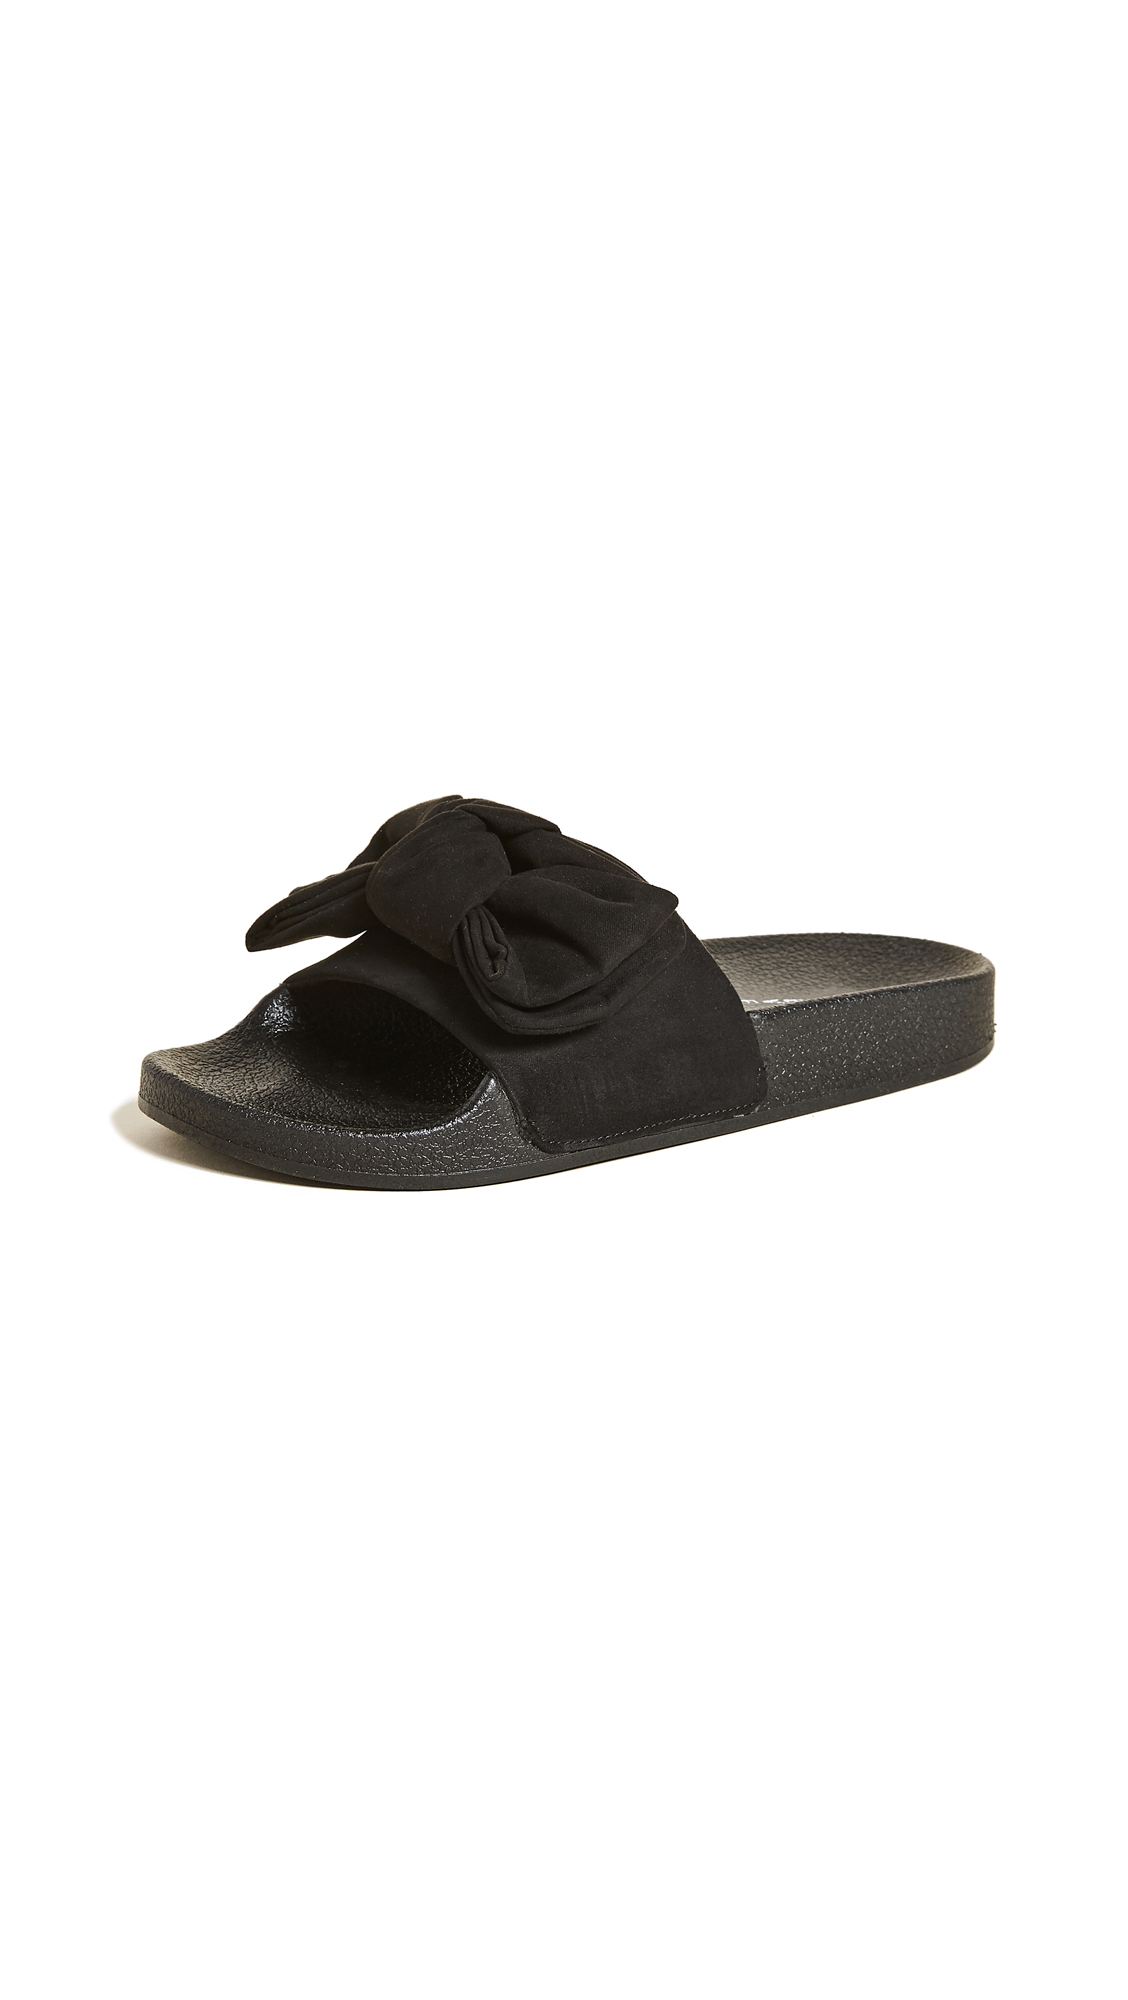 Steven Soraya Pool Slides - Black